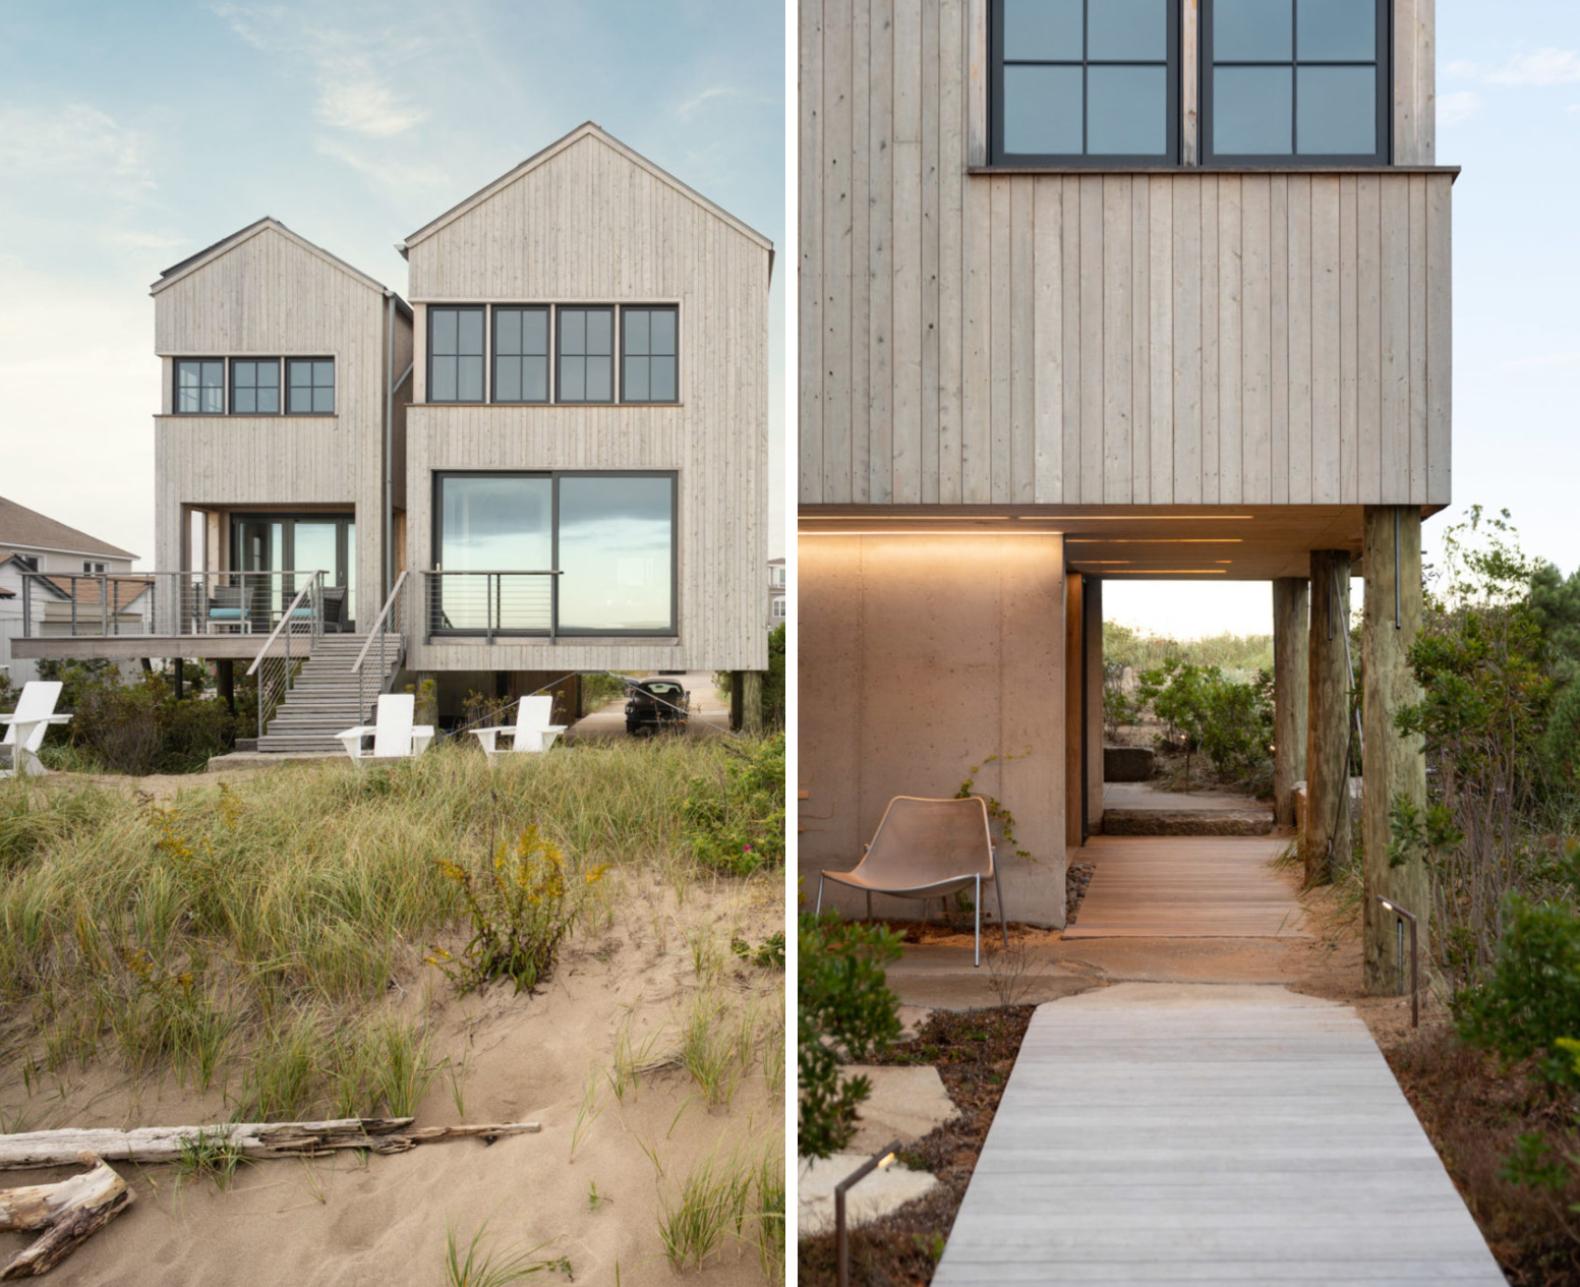 A solar-powered home in Maine rises above the sand dunes on wooden stilts